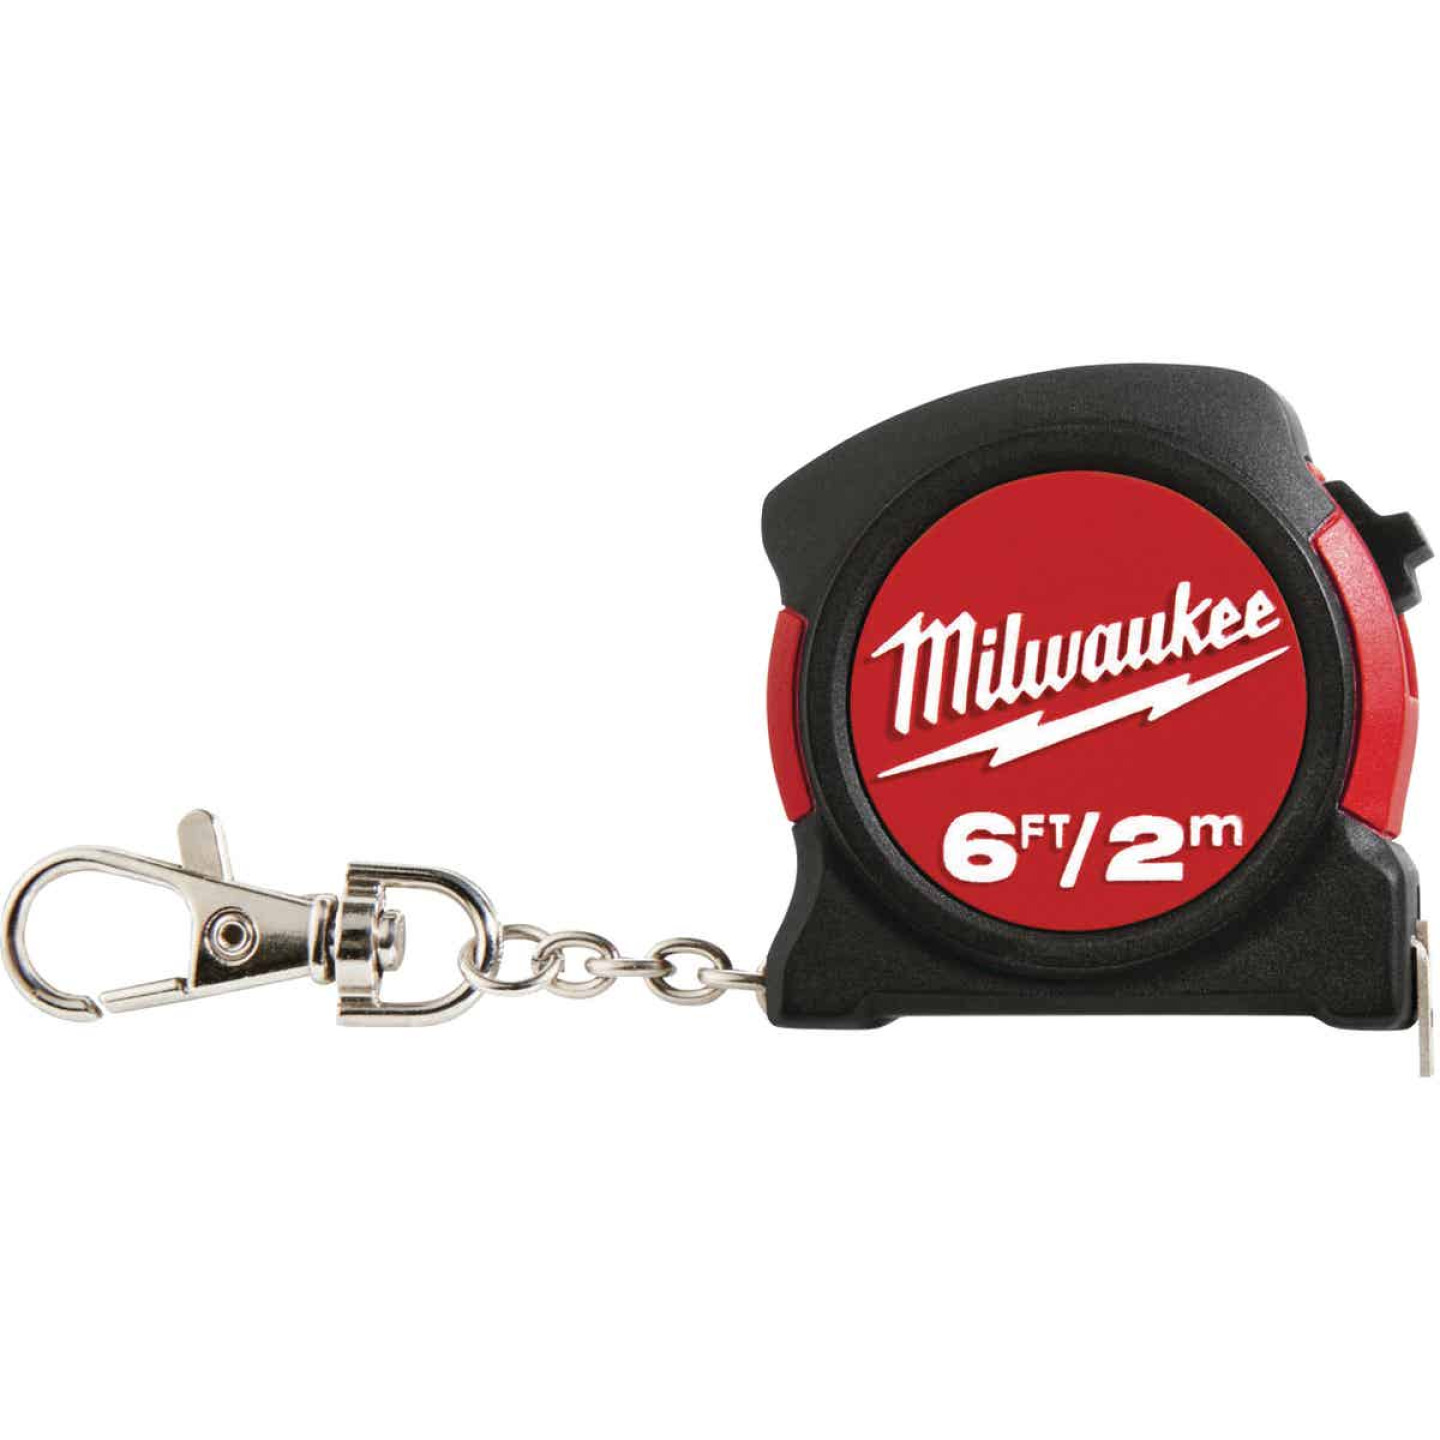 Milwaukee 6 Ft. Key Ring Tape Measure Image 1